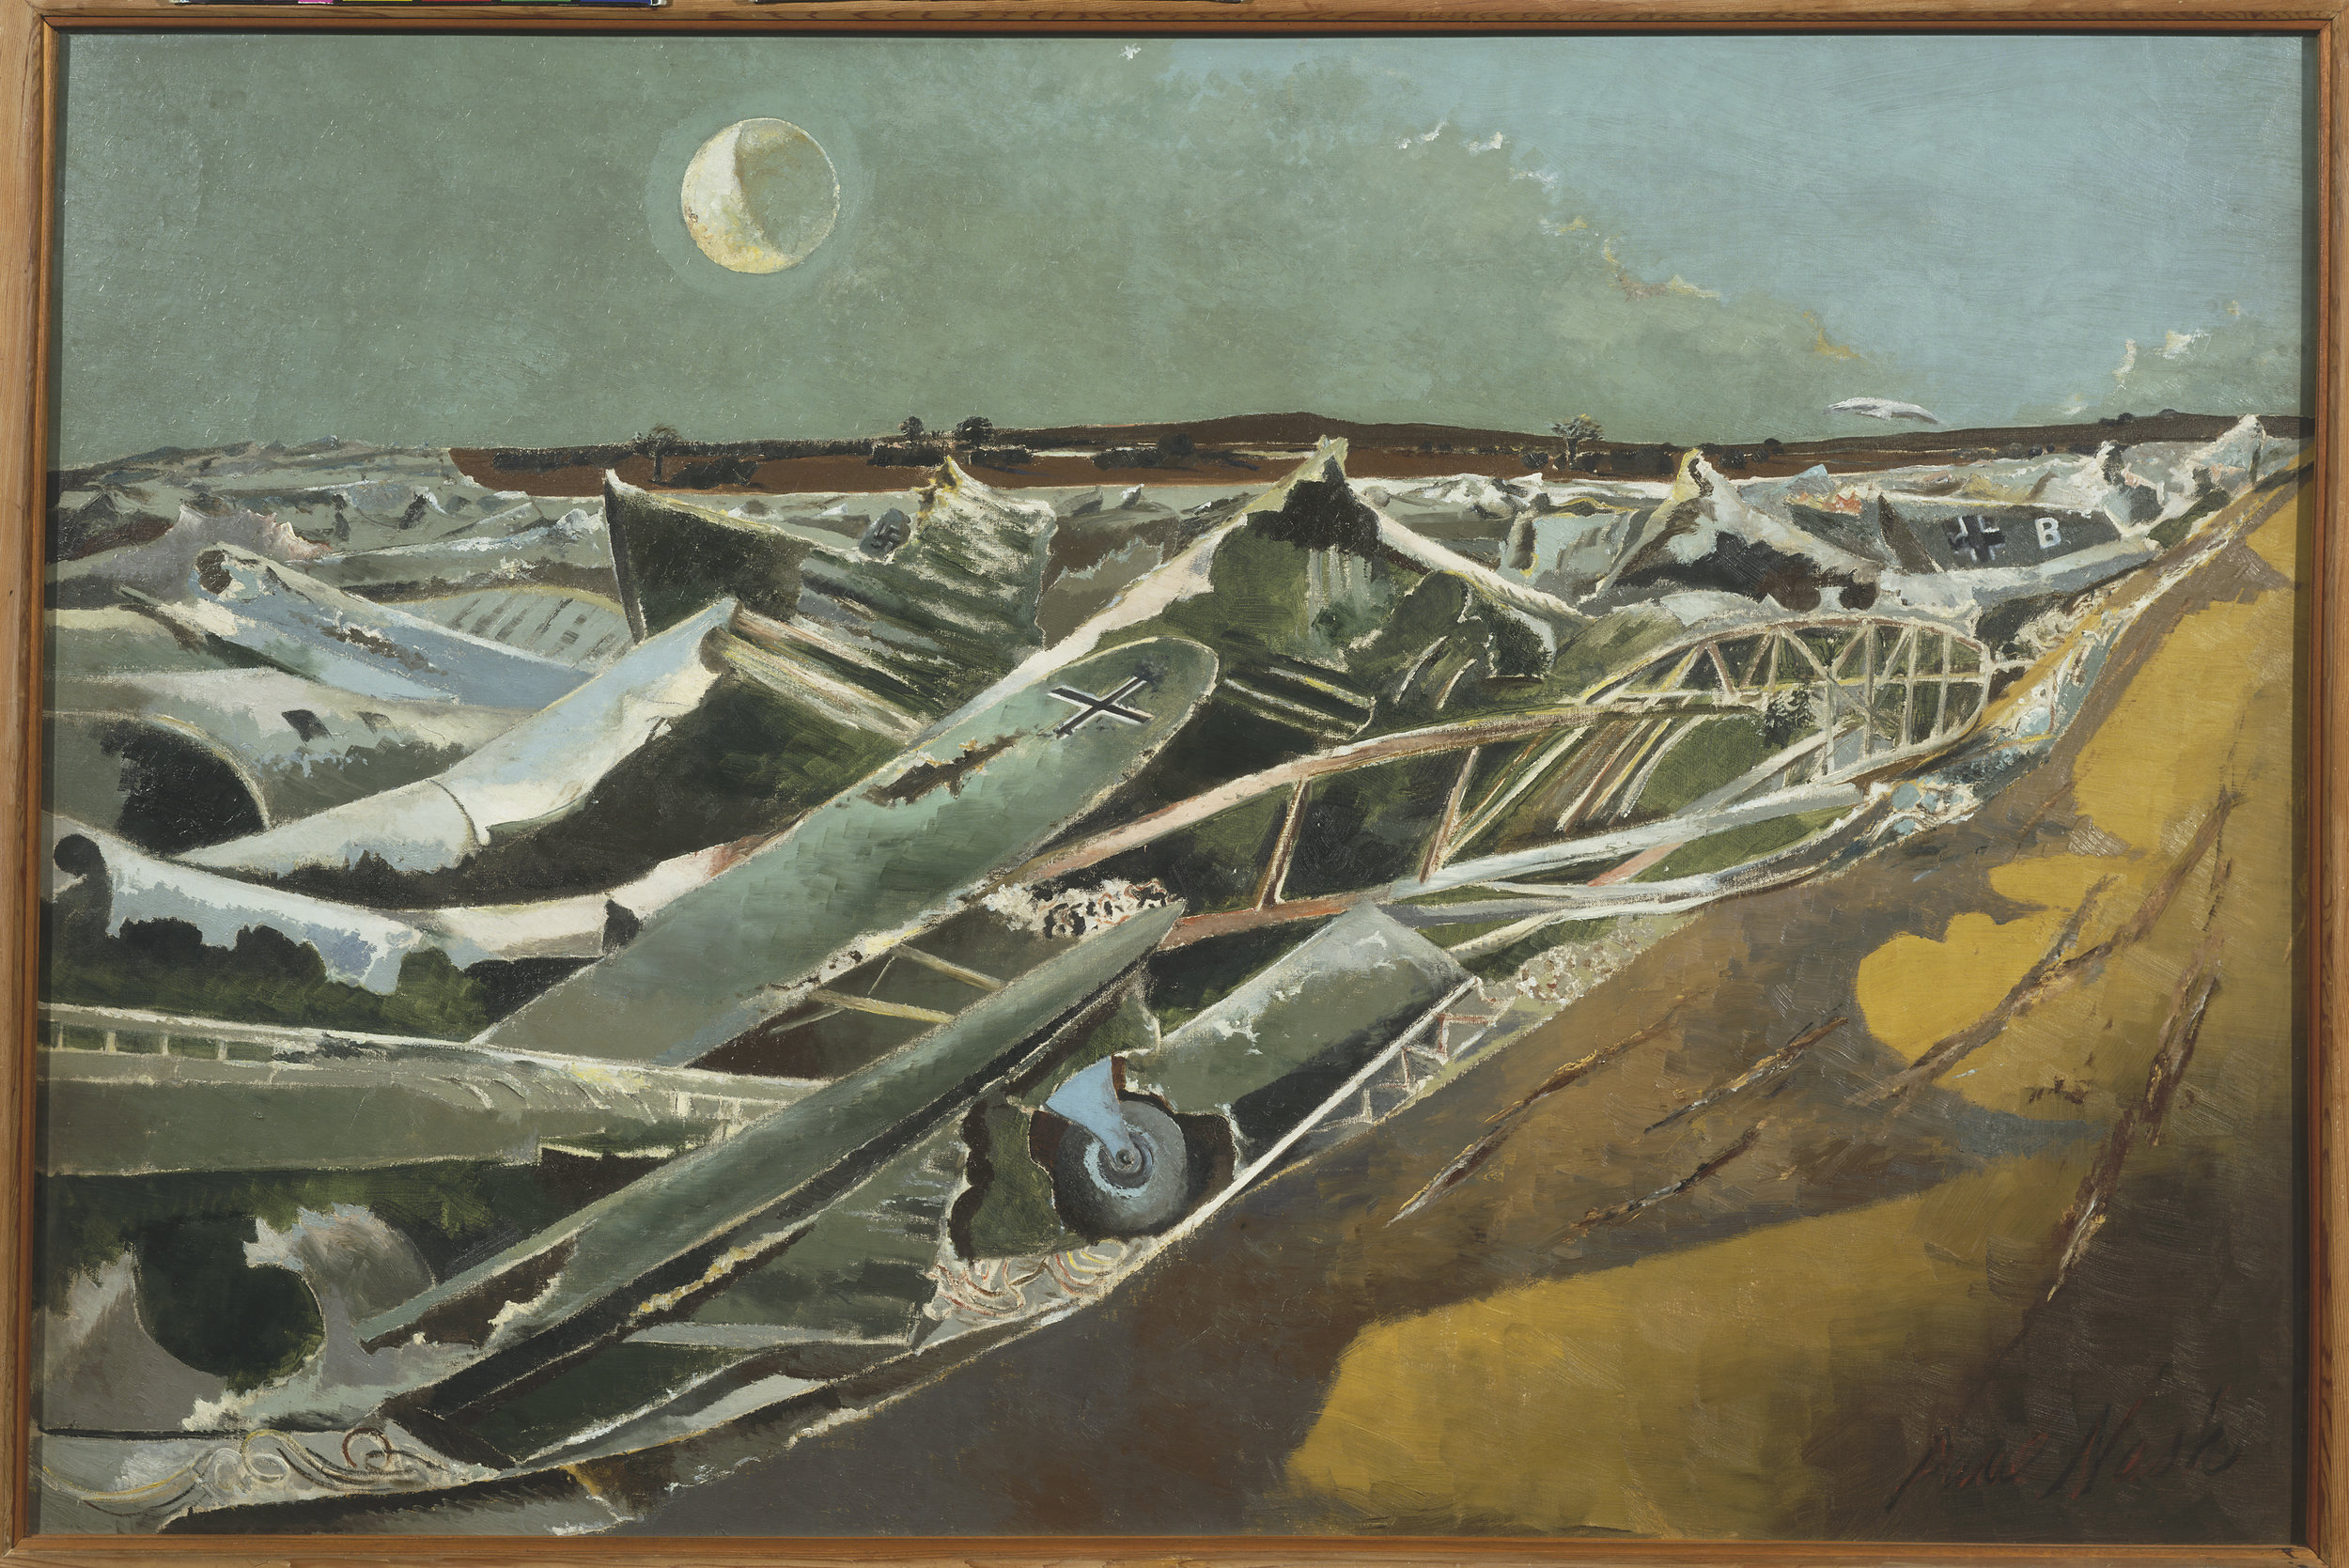 Totes Meer (Dead Sea), 1940-1 by Paul Nash © Tate, London.